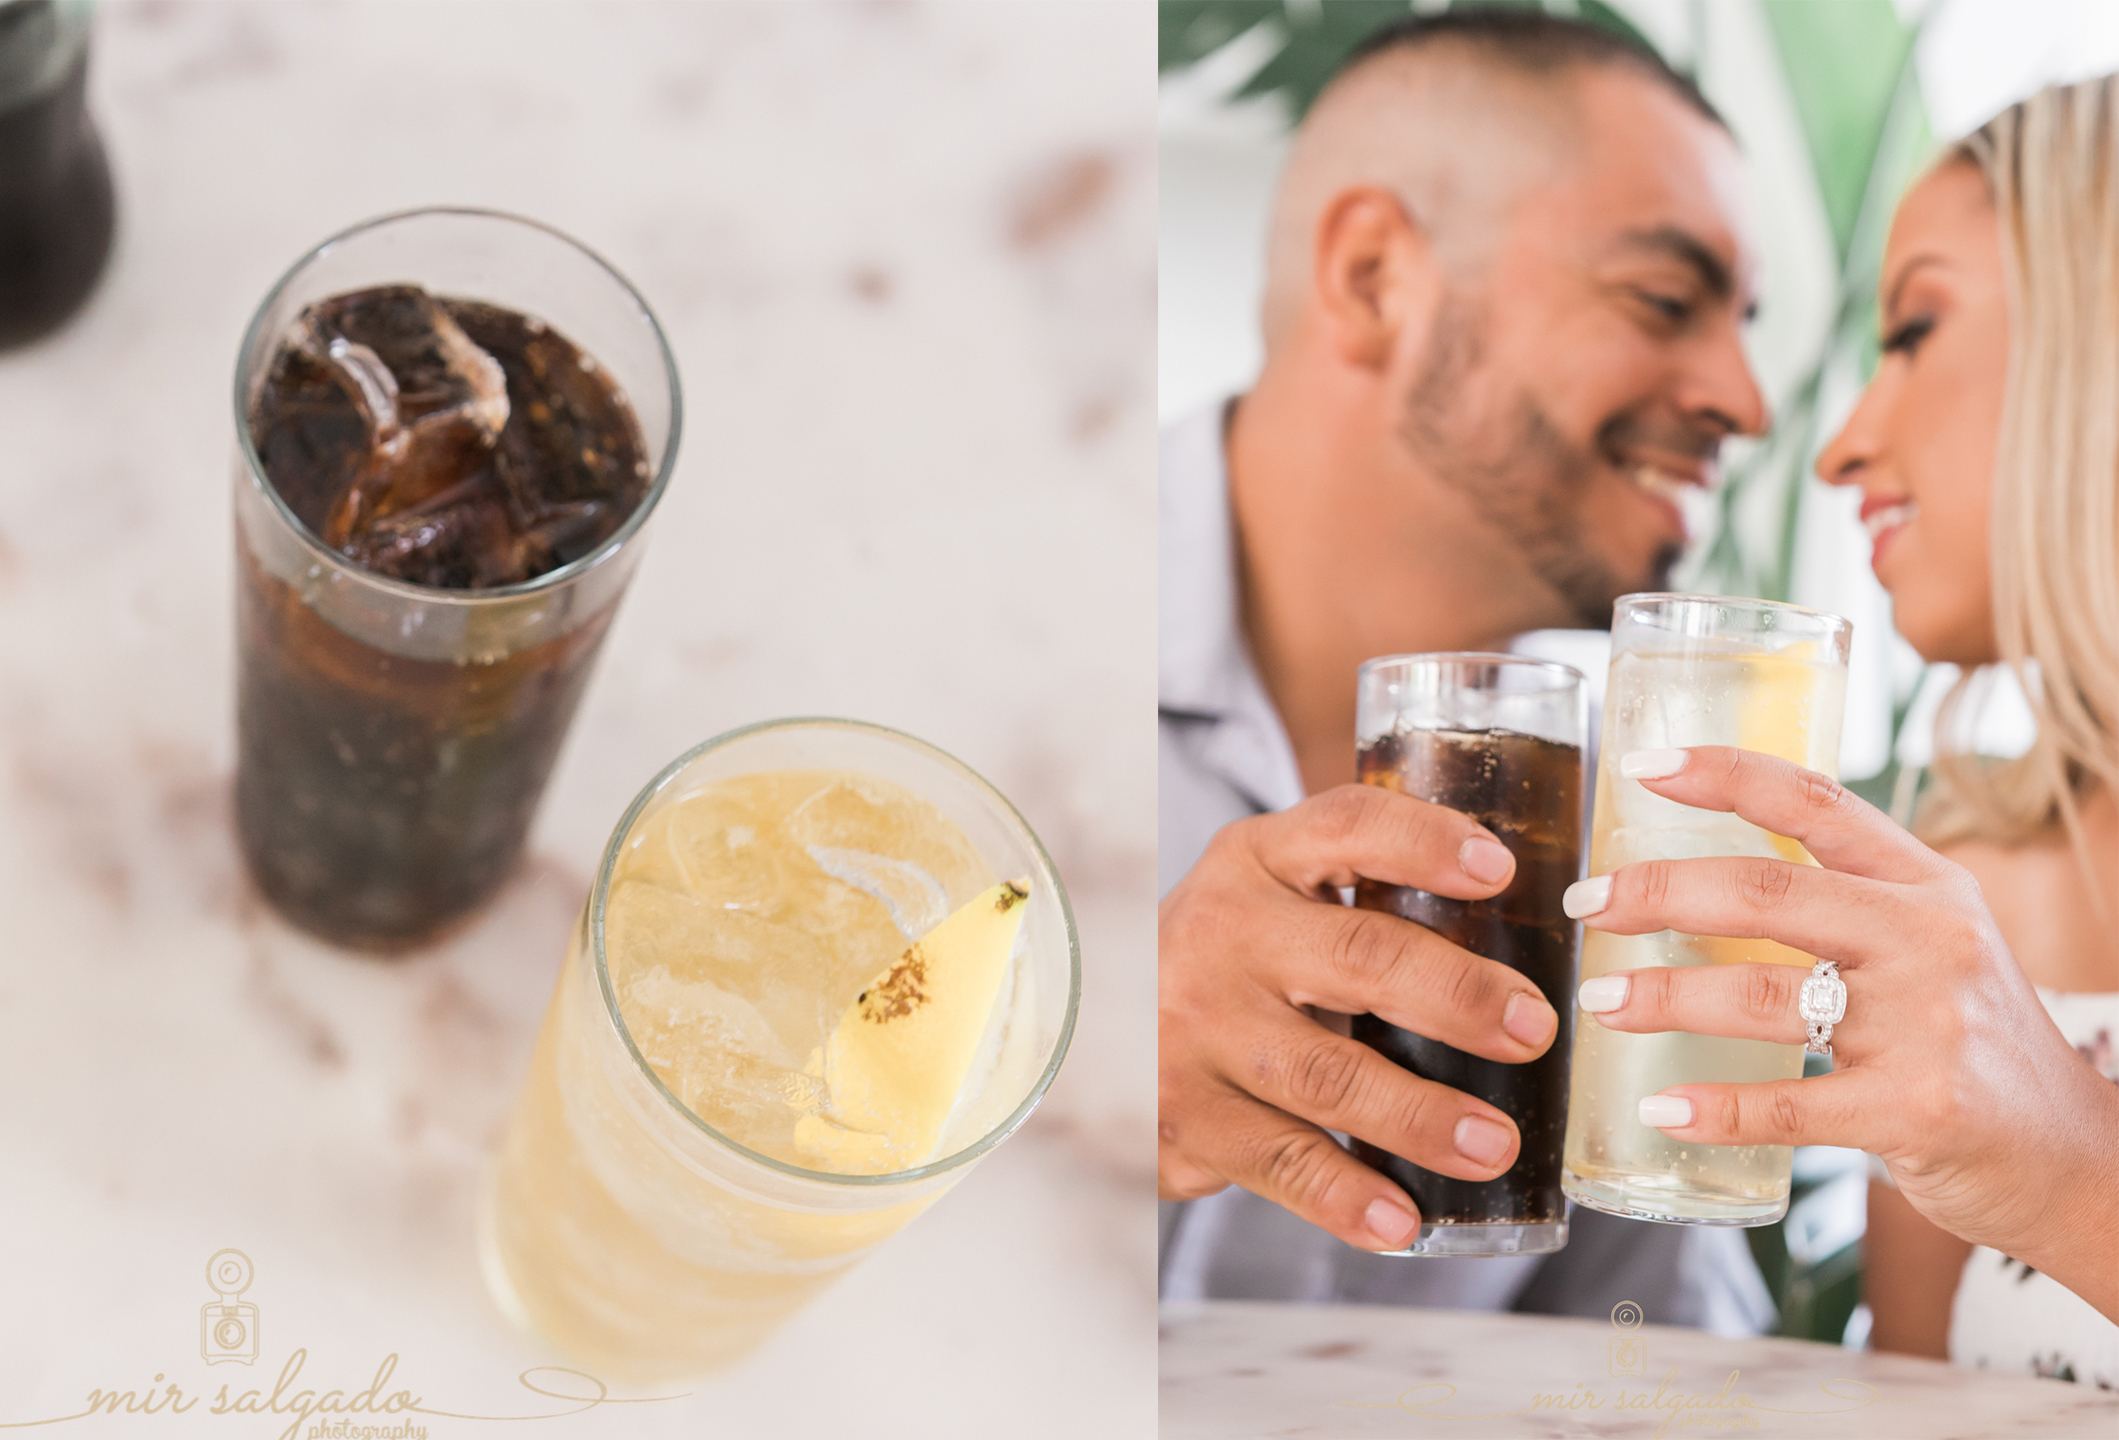 miriam-photography-tampa-st-pete-engagement-session-drinks-glance-cheers